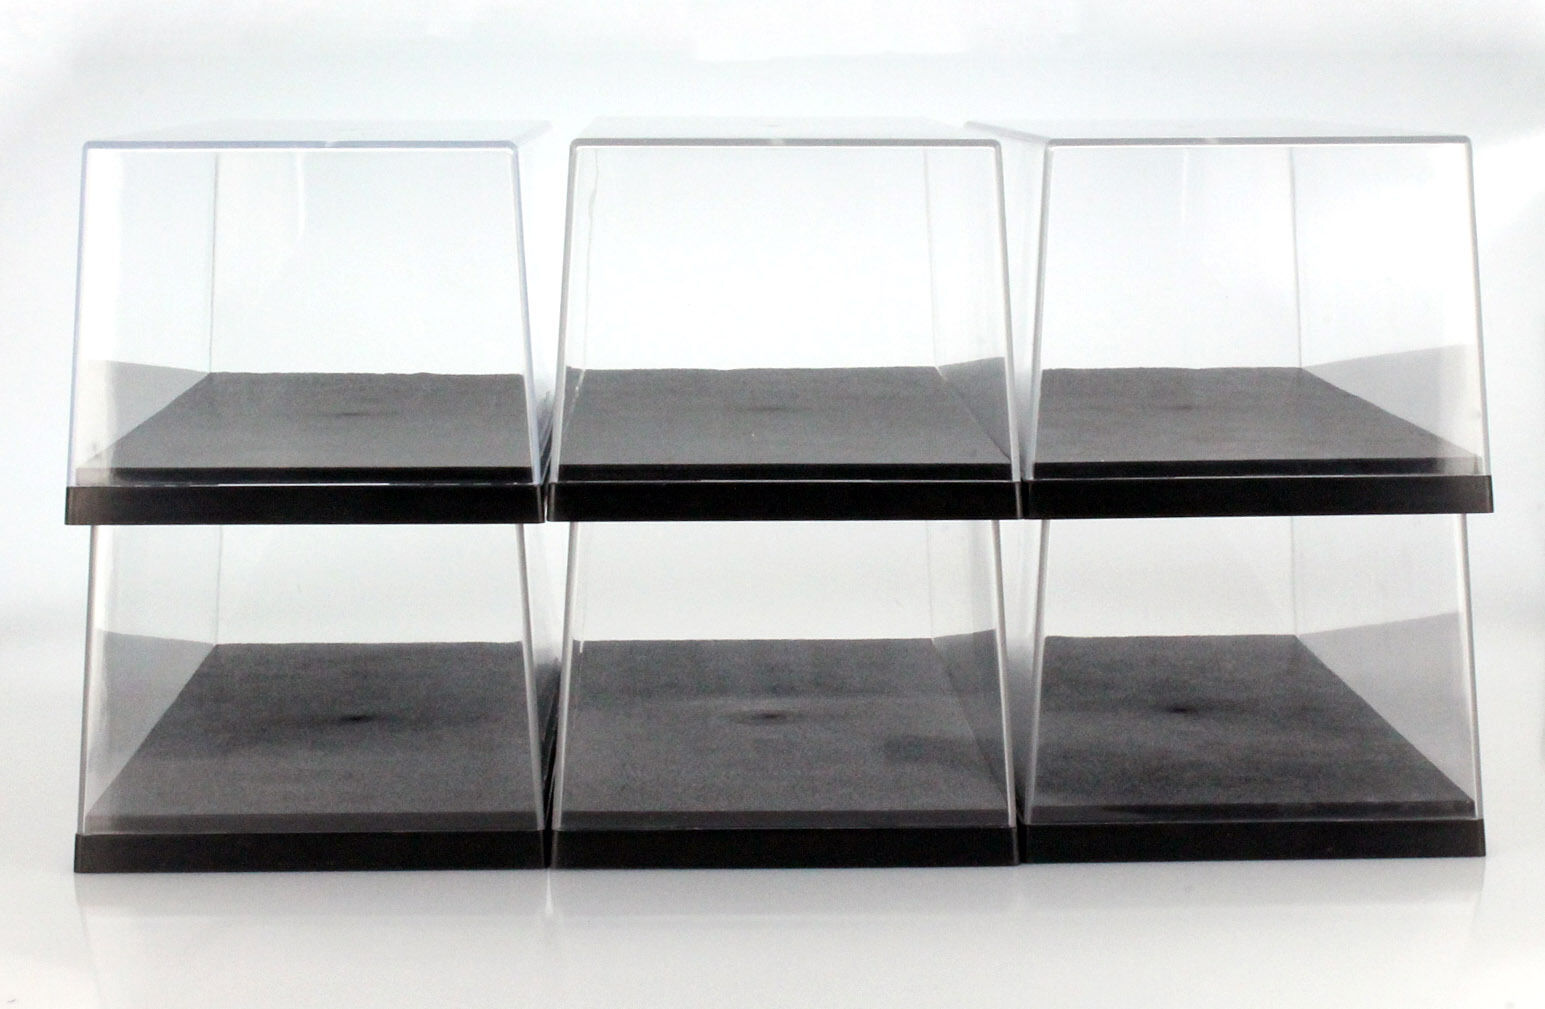 6 Carton Triple9 Acrylic Display Cases for Model Cars on a Scale of 1